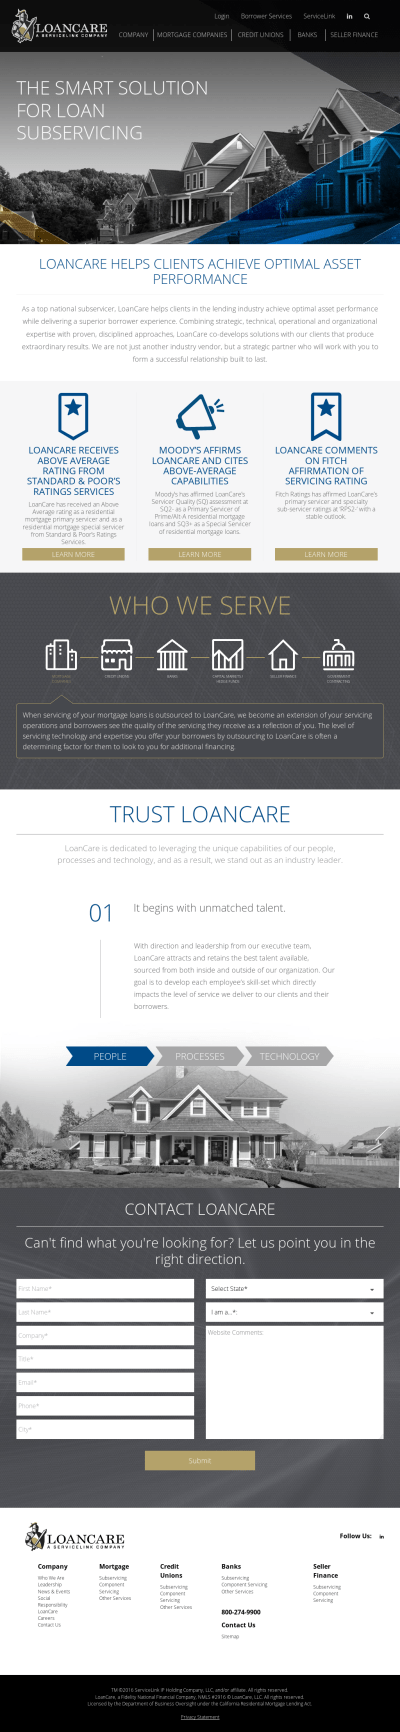 LoanCare Competitors, Revenue and Employees - Owler Company Profile